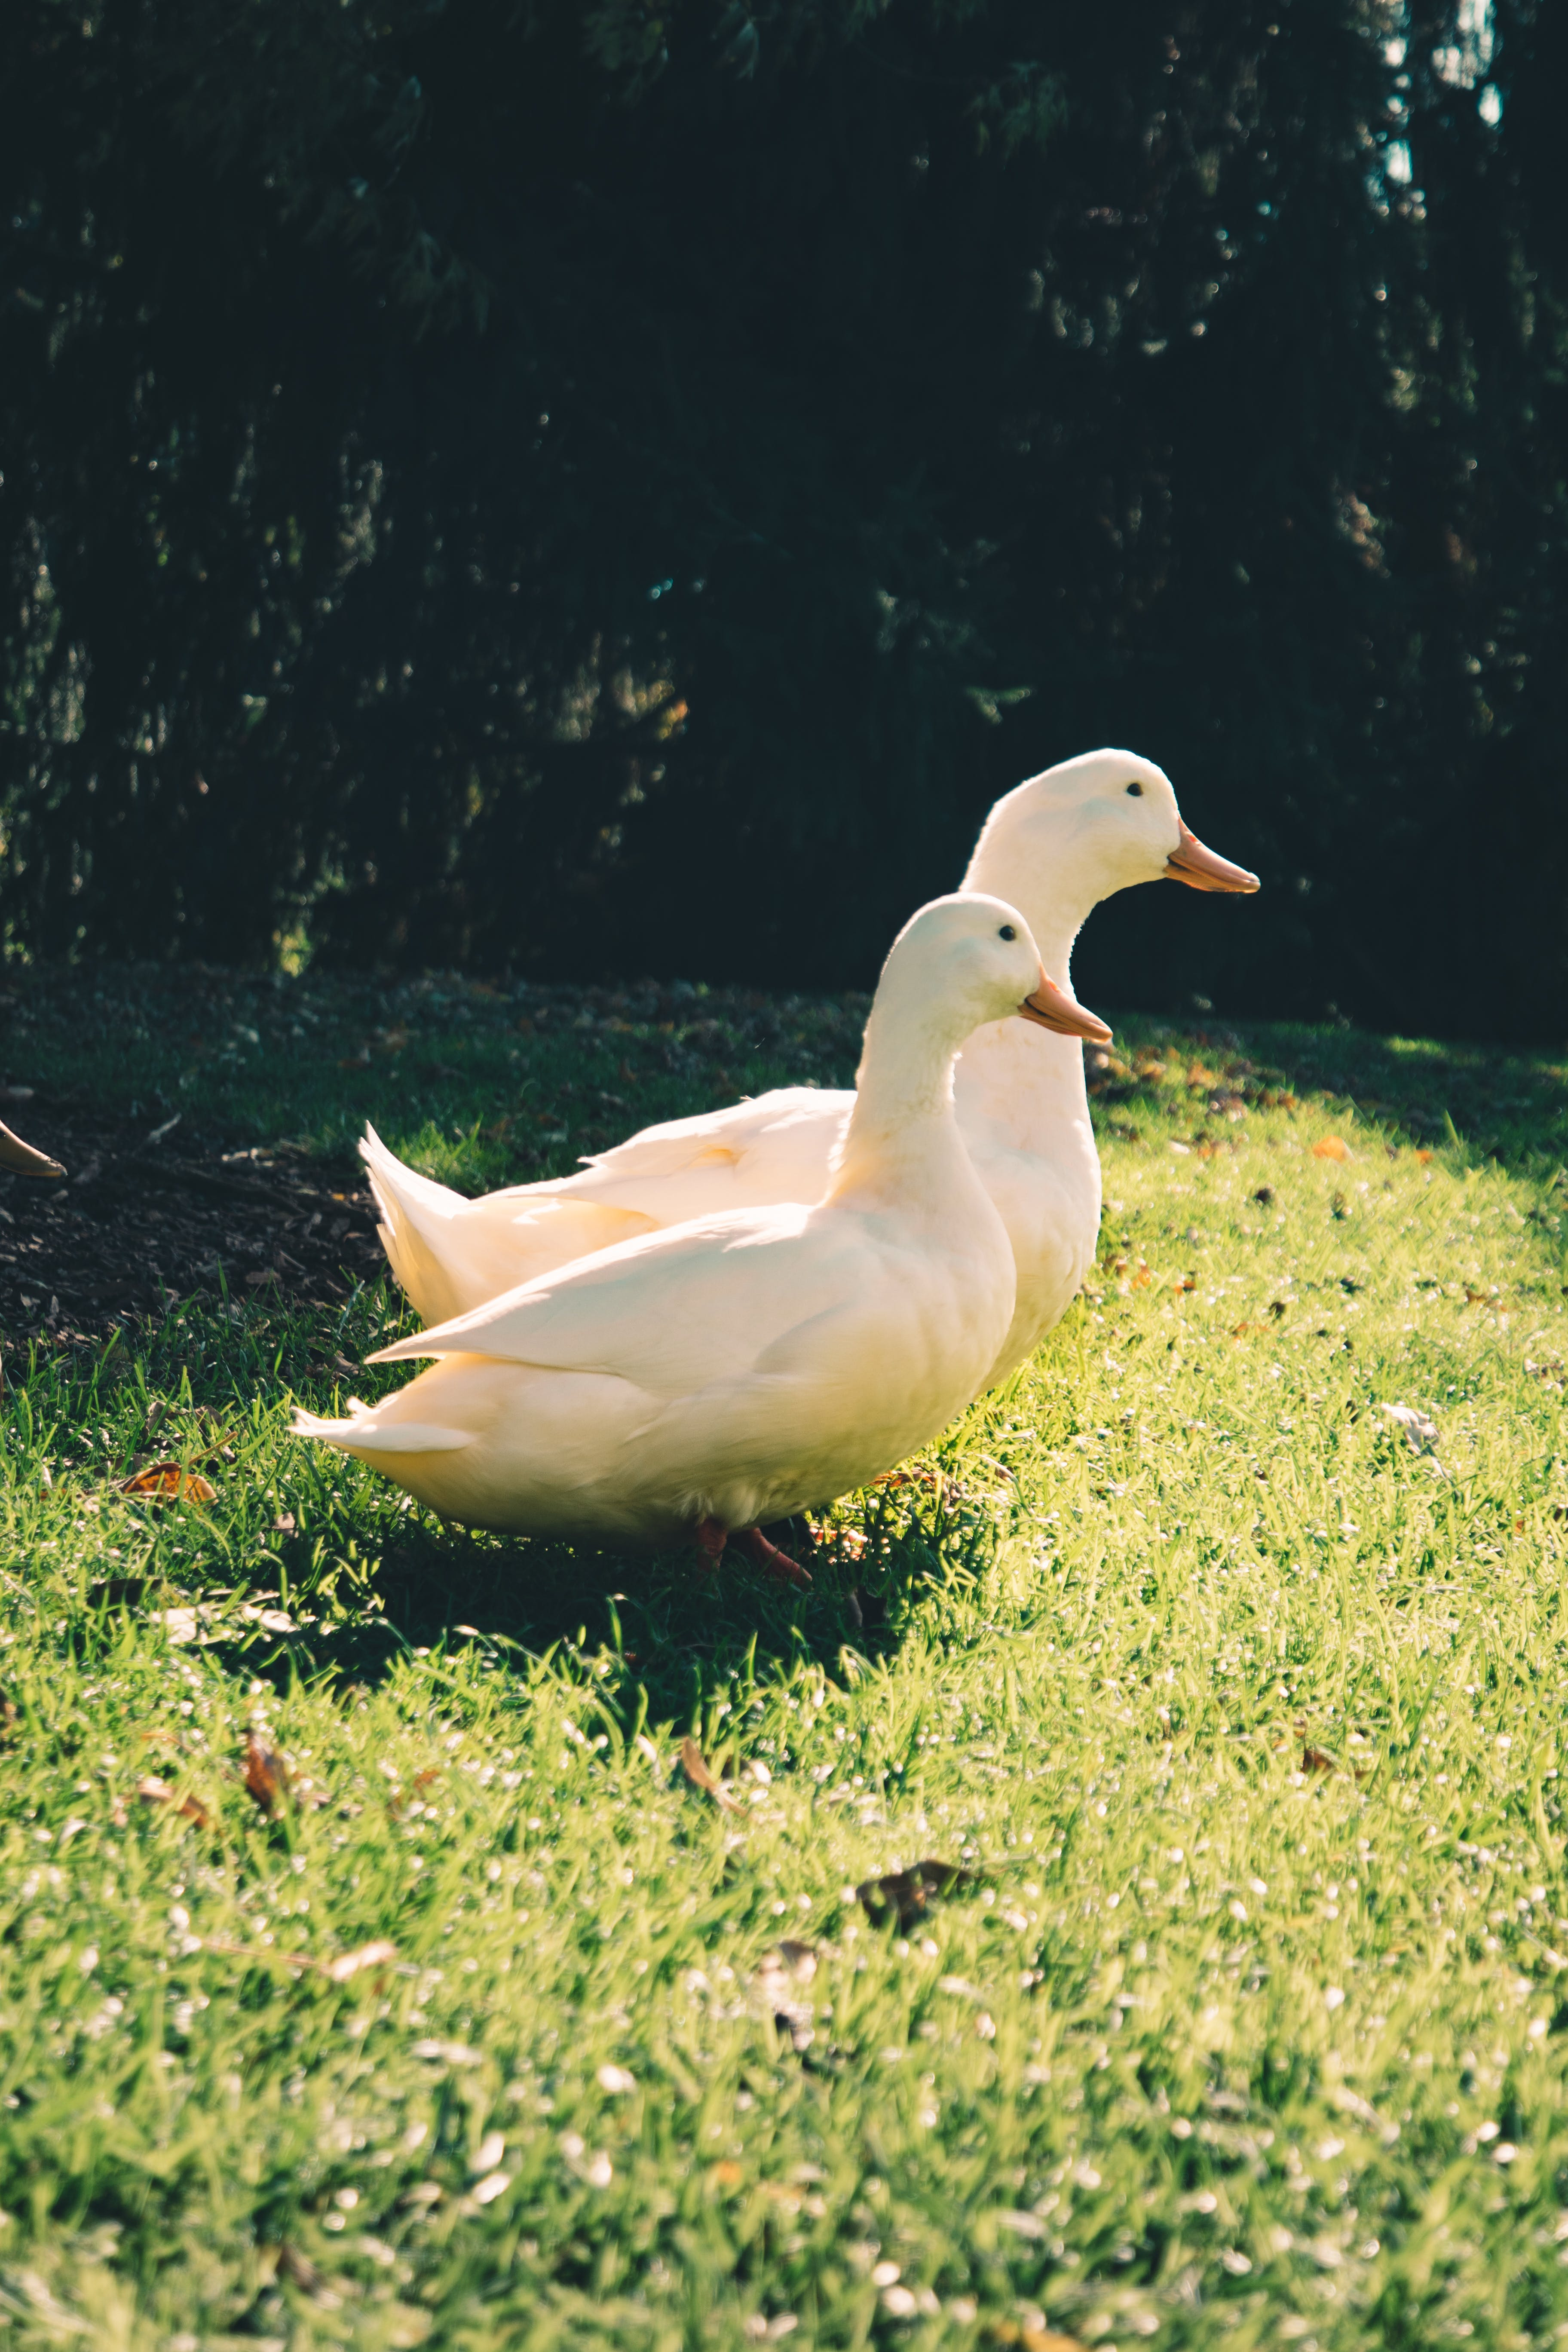 Two White Ducks on Green Grass Field